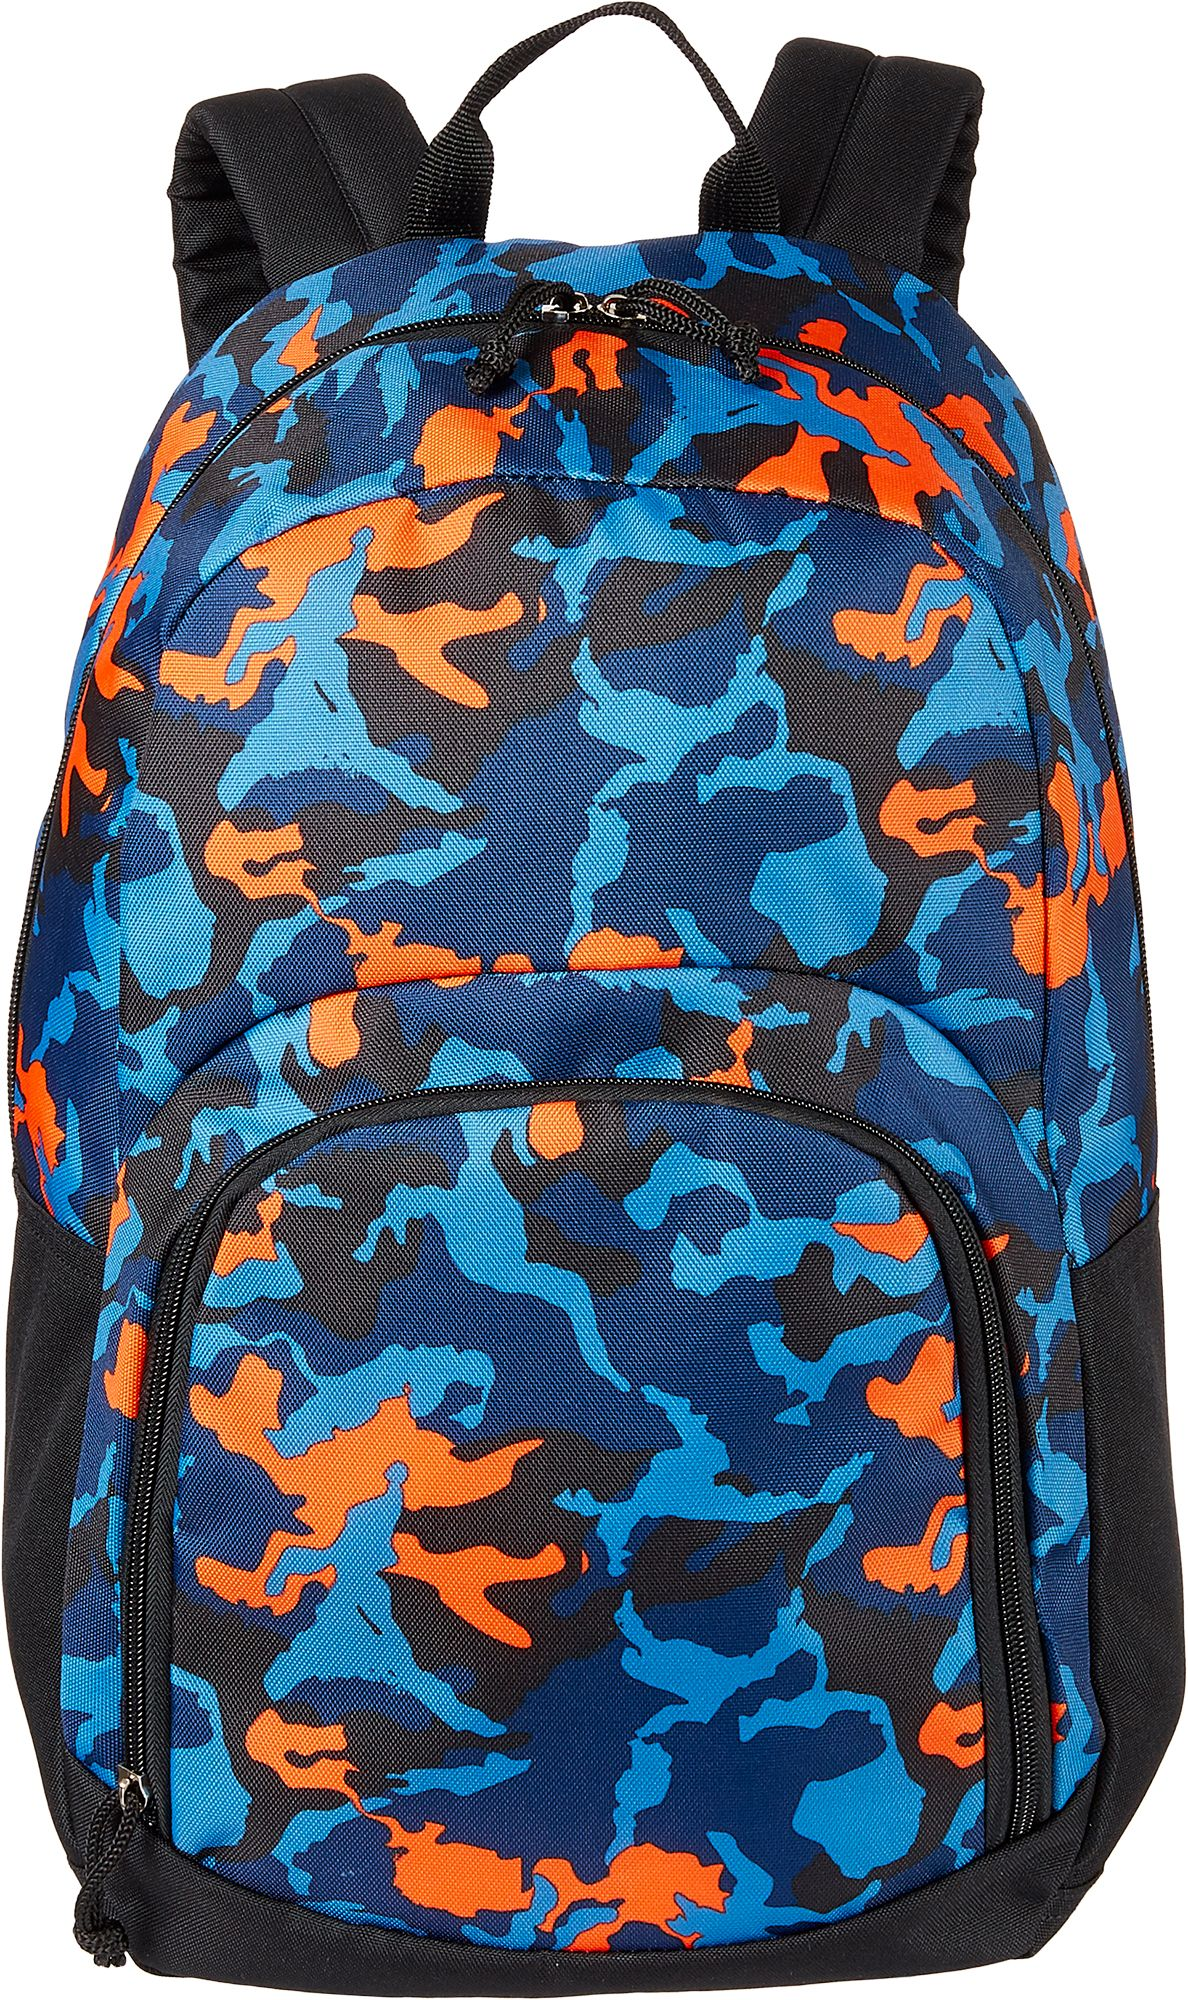 DSG Adventure Backpack, Size: One size